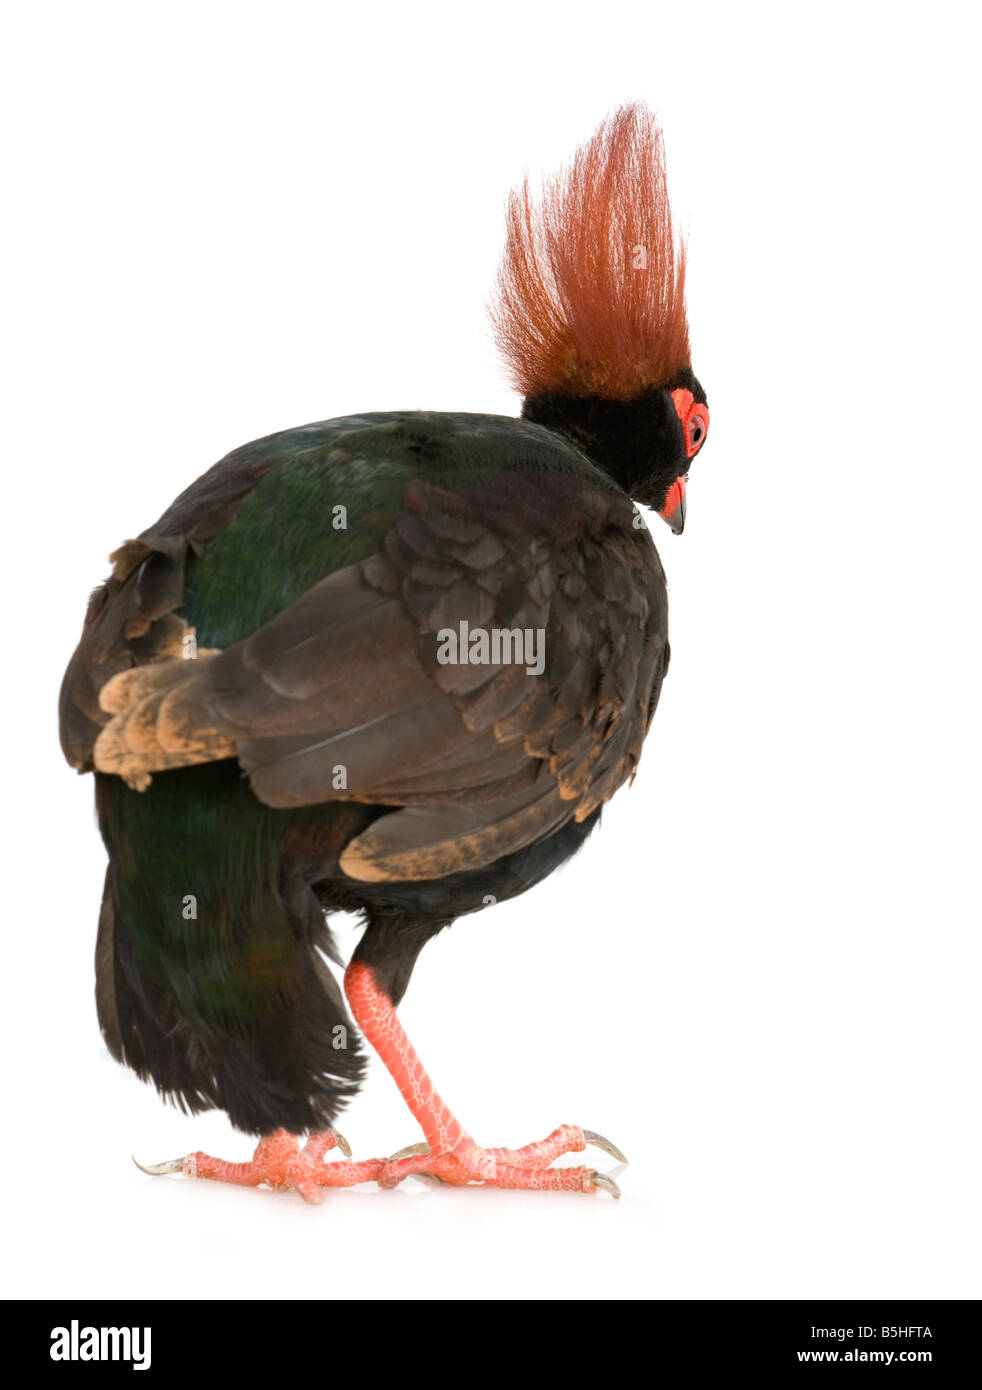 Crested Wood Partridge in front of a white background - Stock Image